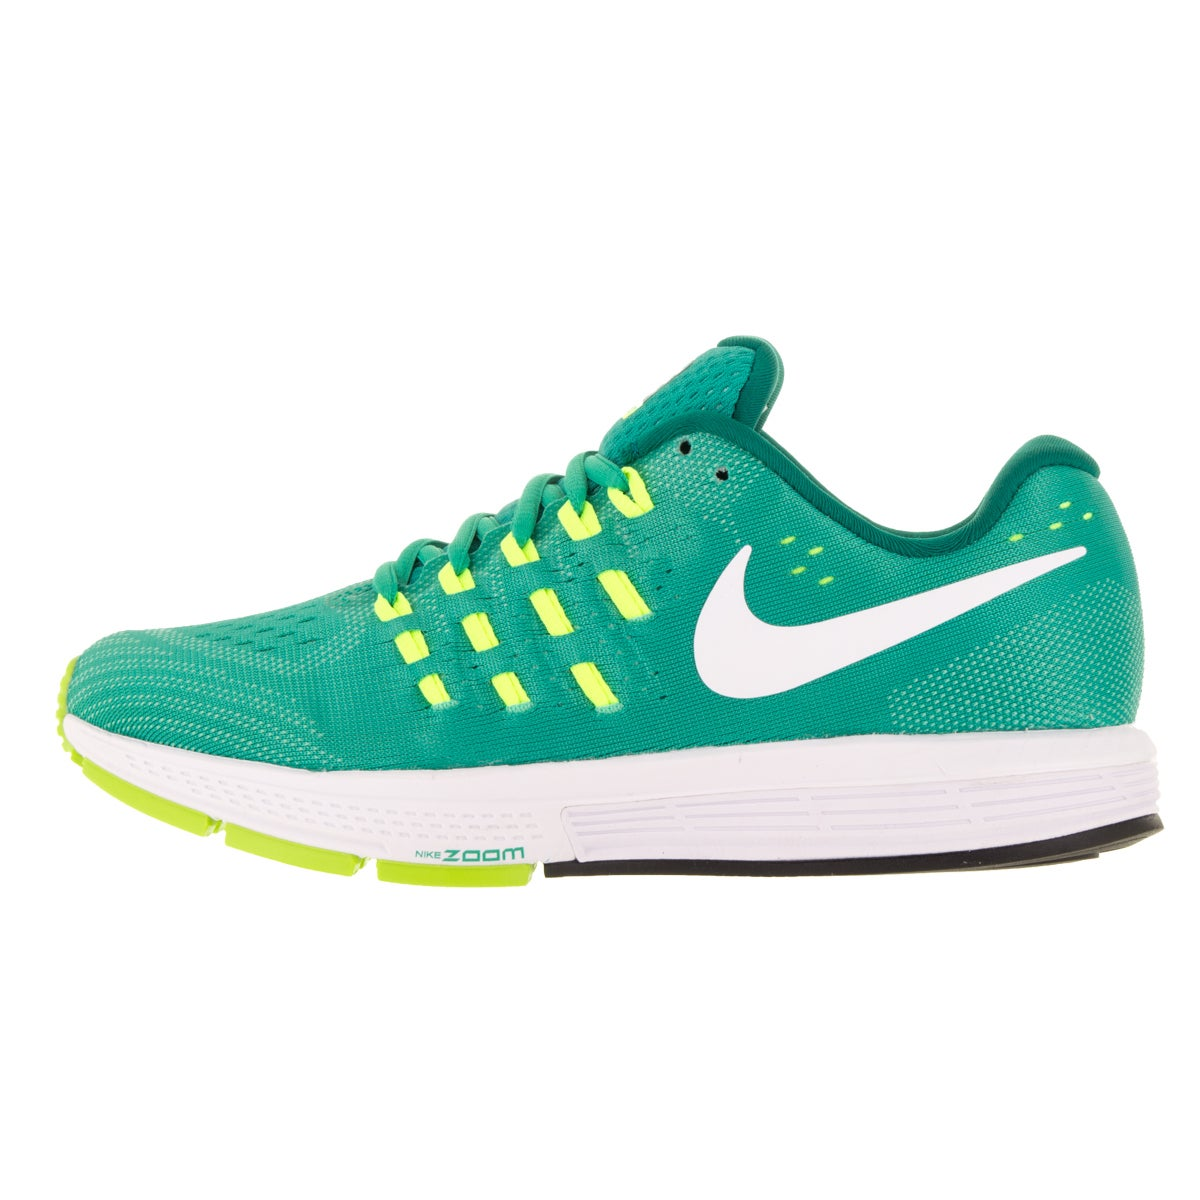 0d463003646 Shop Nike Women s Air Zoom Vomero 11 Clear Jade White Volt Rio Teal Running  Shoes - Free Shipping Today - Overstock - 13313199